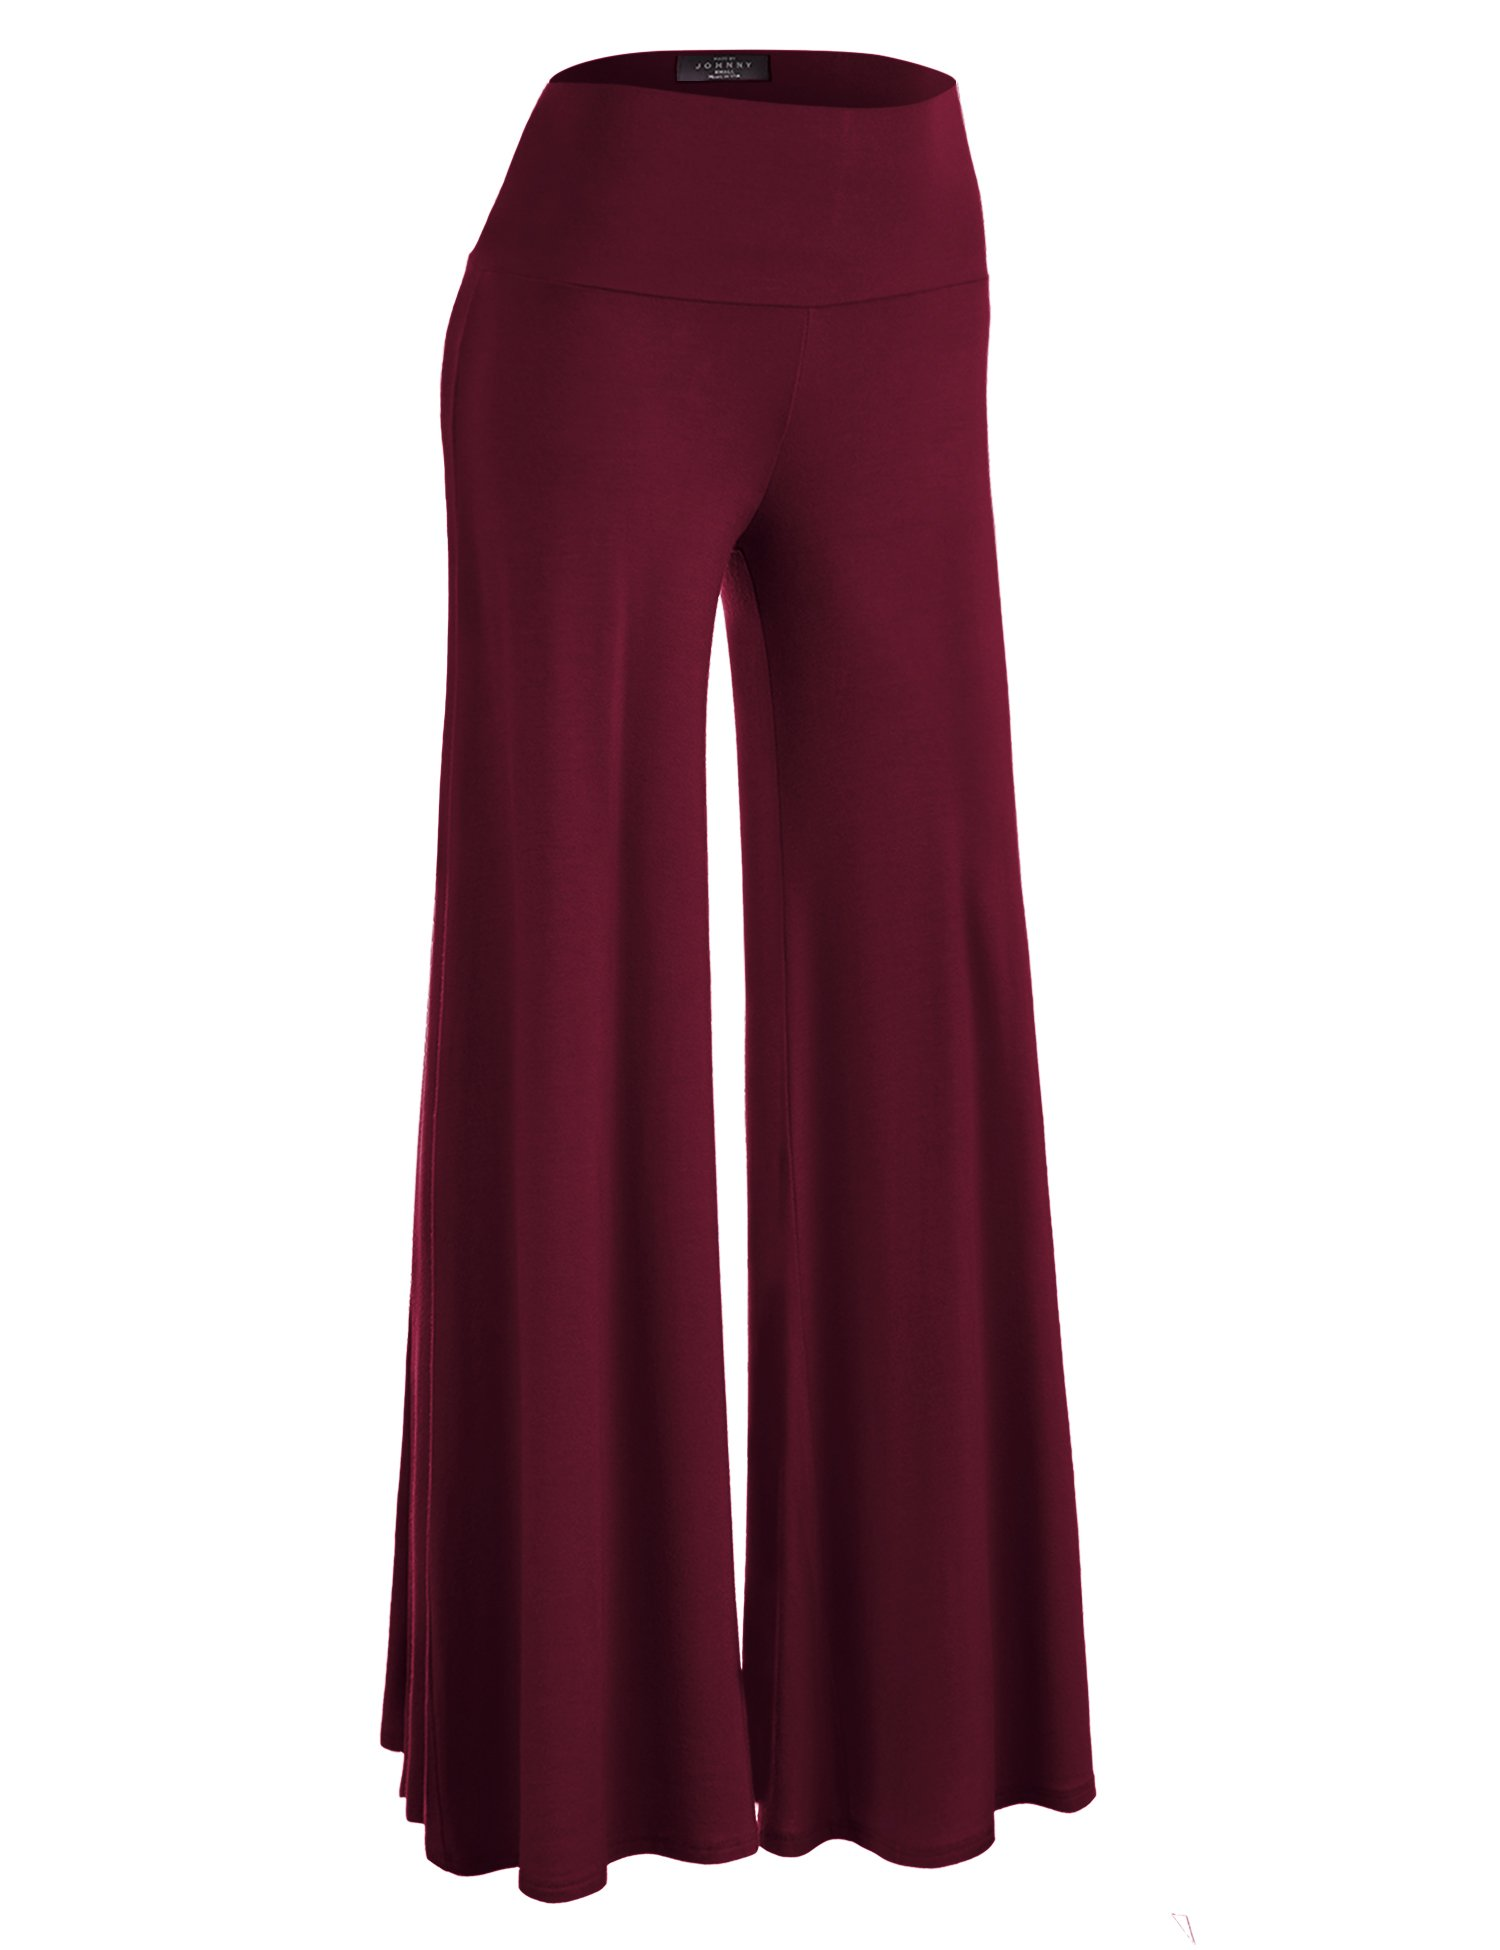 Made By Johnny WB750 Womens Chic Palazzo Lounge Pants M WINE